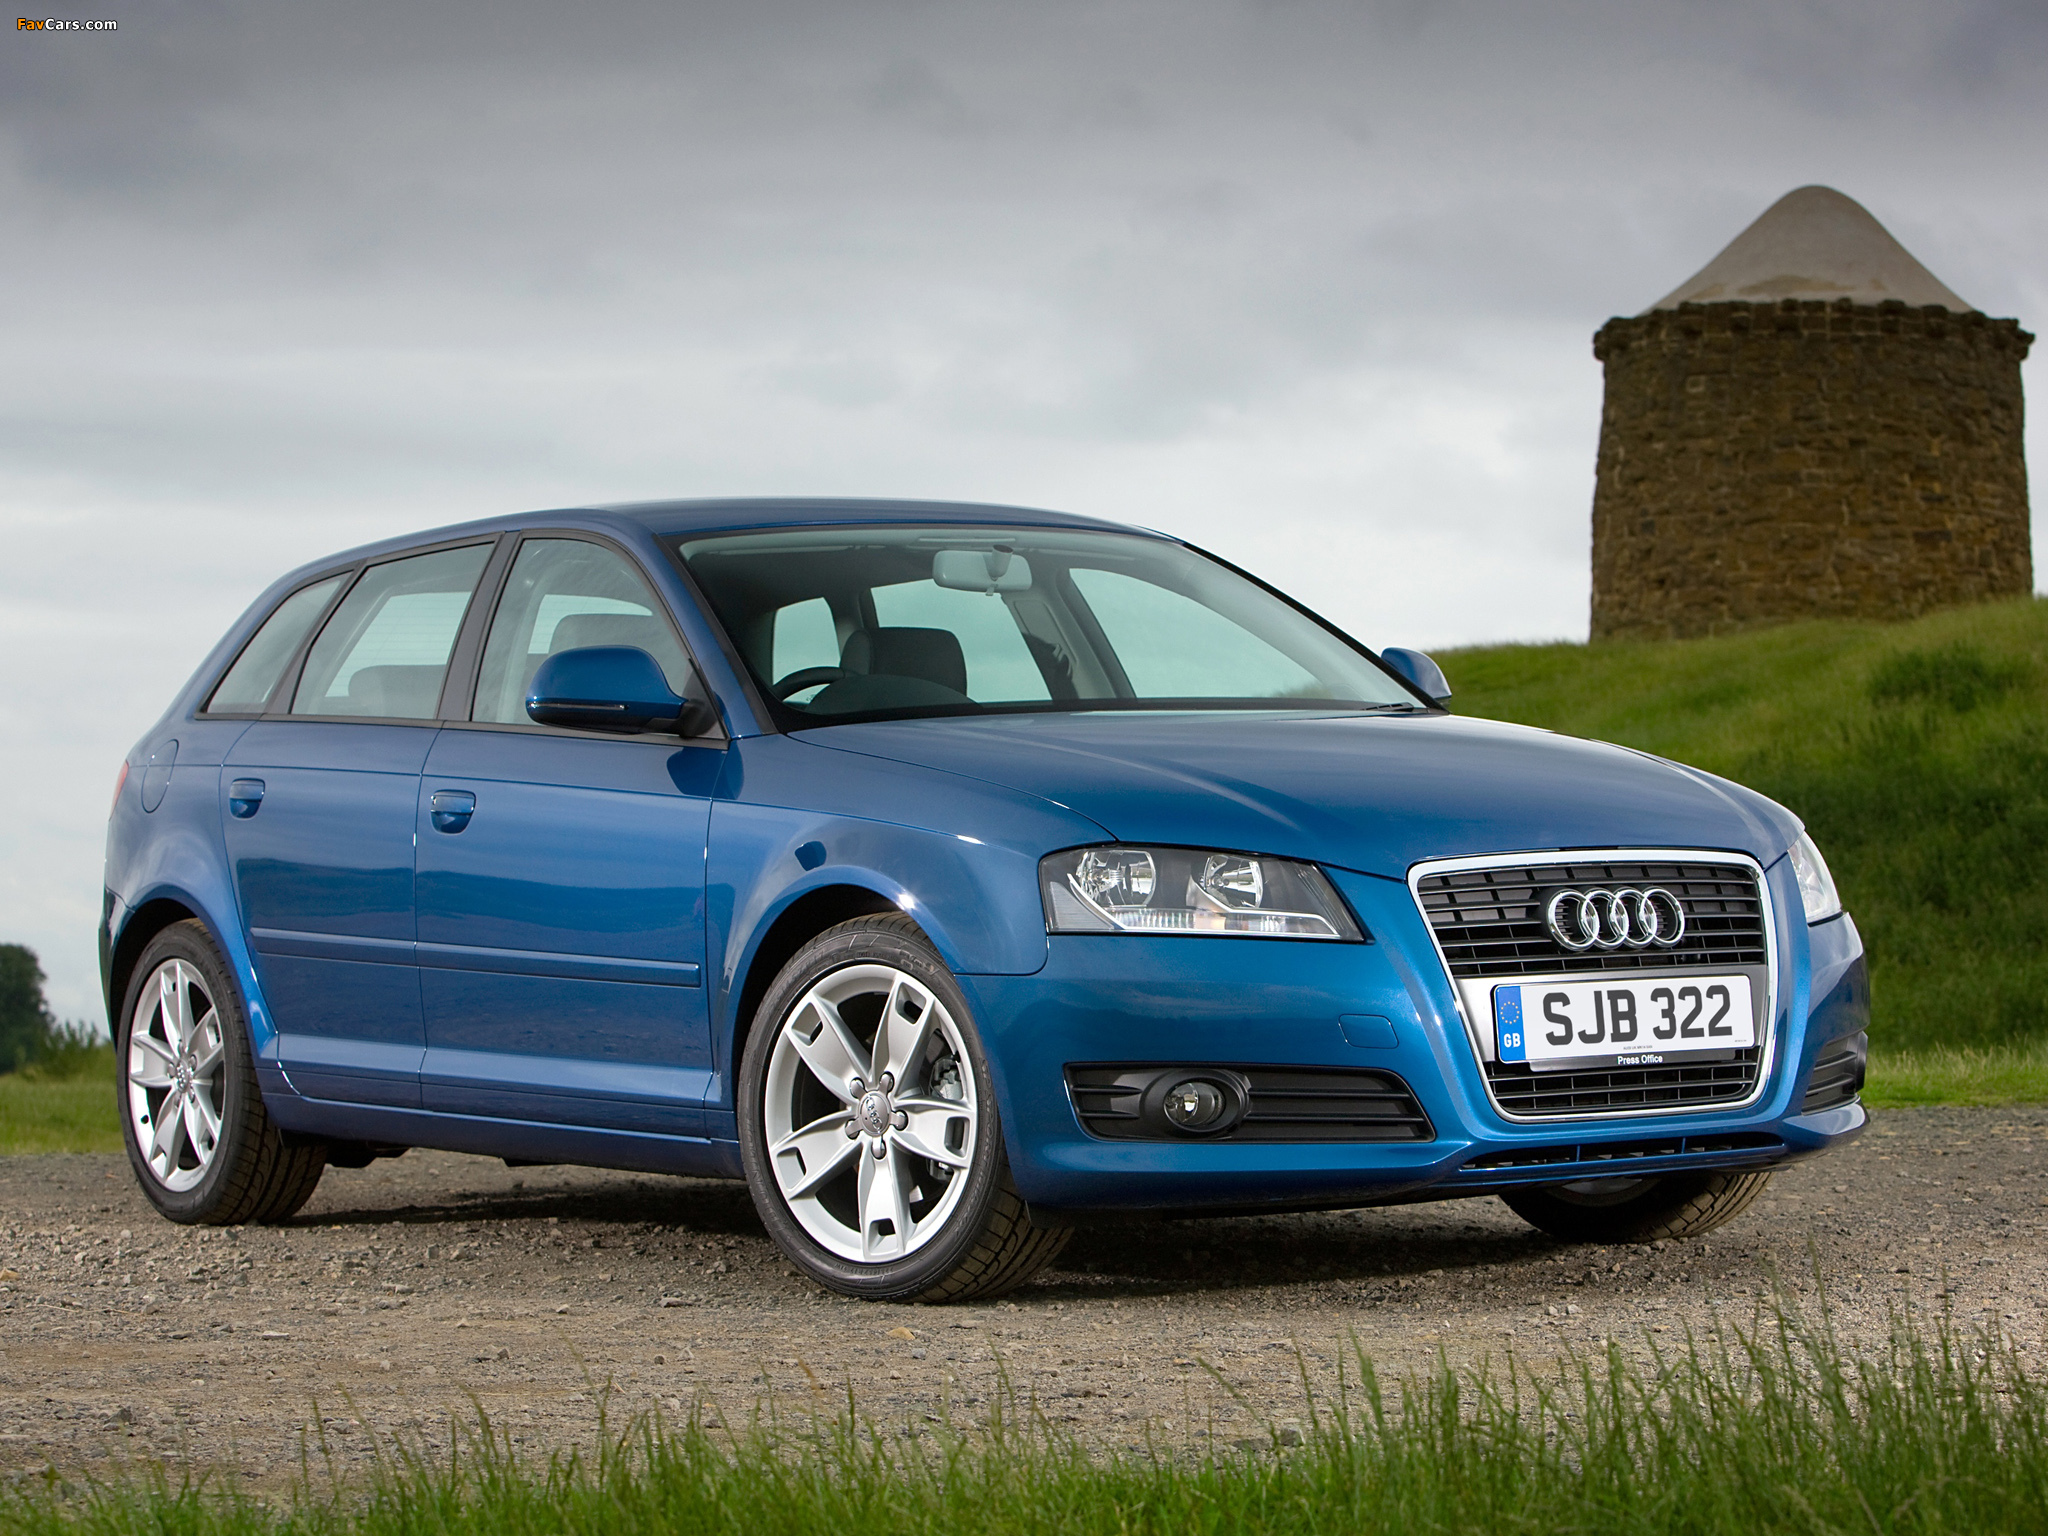 audi a3 sportback 2 0 tdi uk spec 8pa 2008 2010 wallpapers 2048x1536. Black Bedroom Furniture Sets. Home Design Ideas